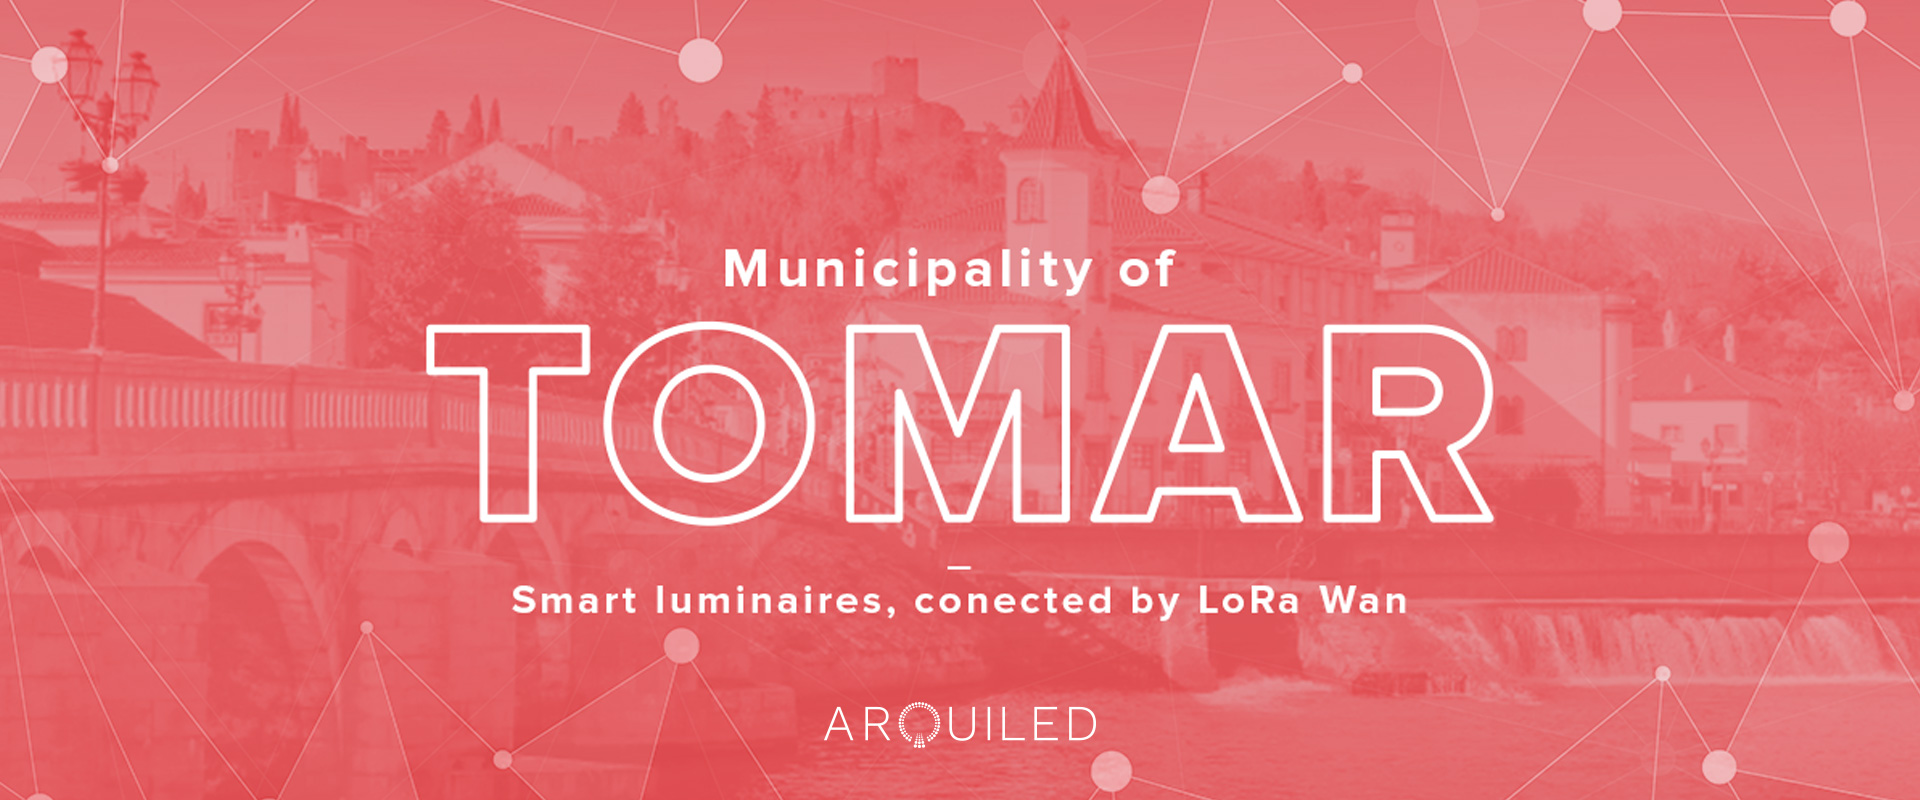 Arquiled provides Tomar Municipality with smart luminaires